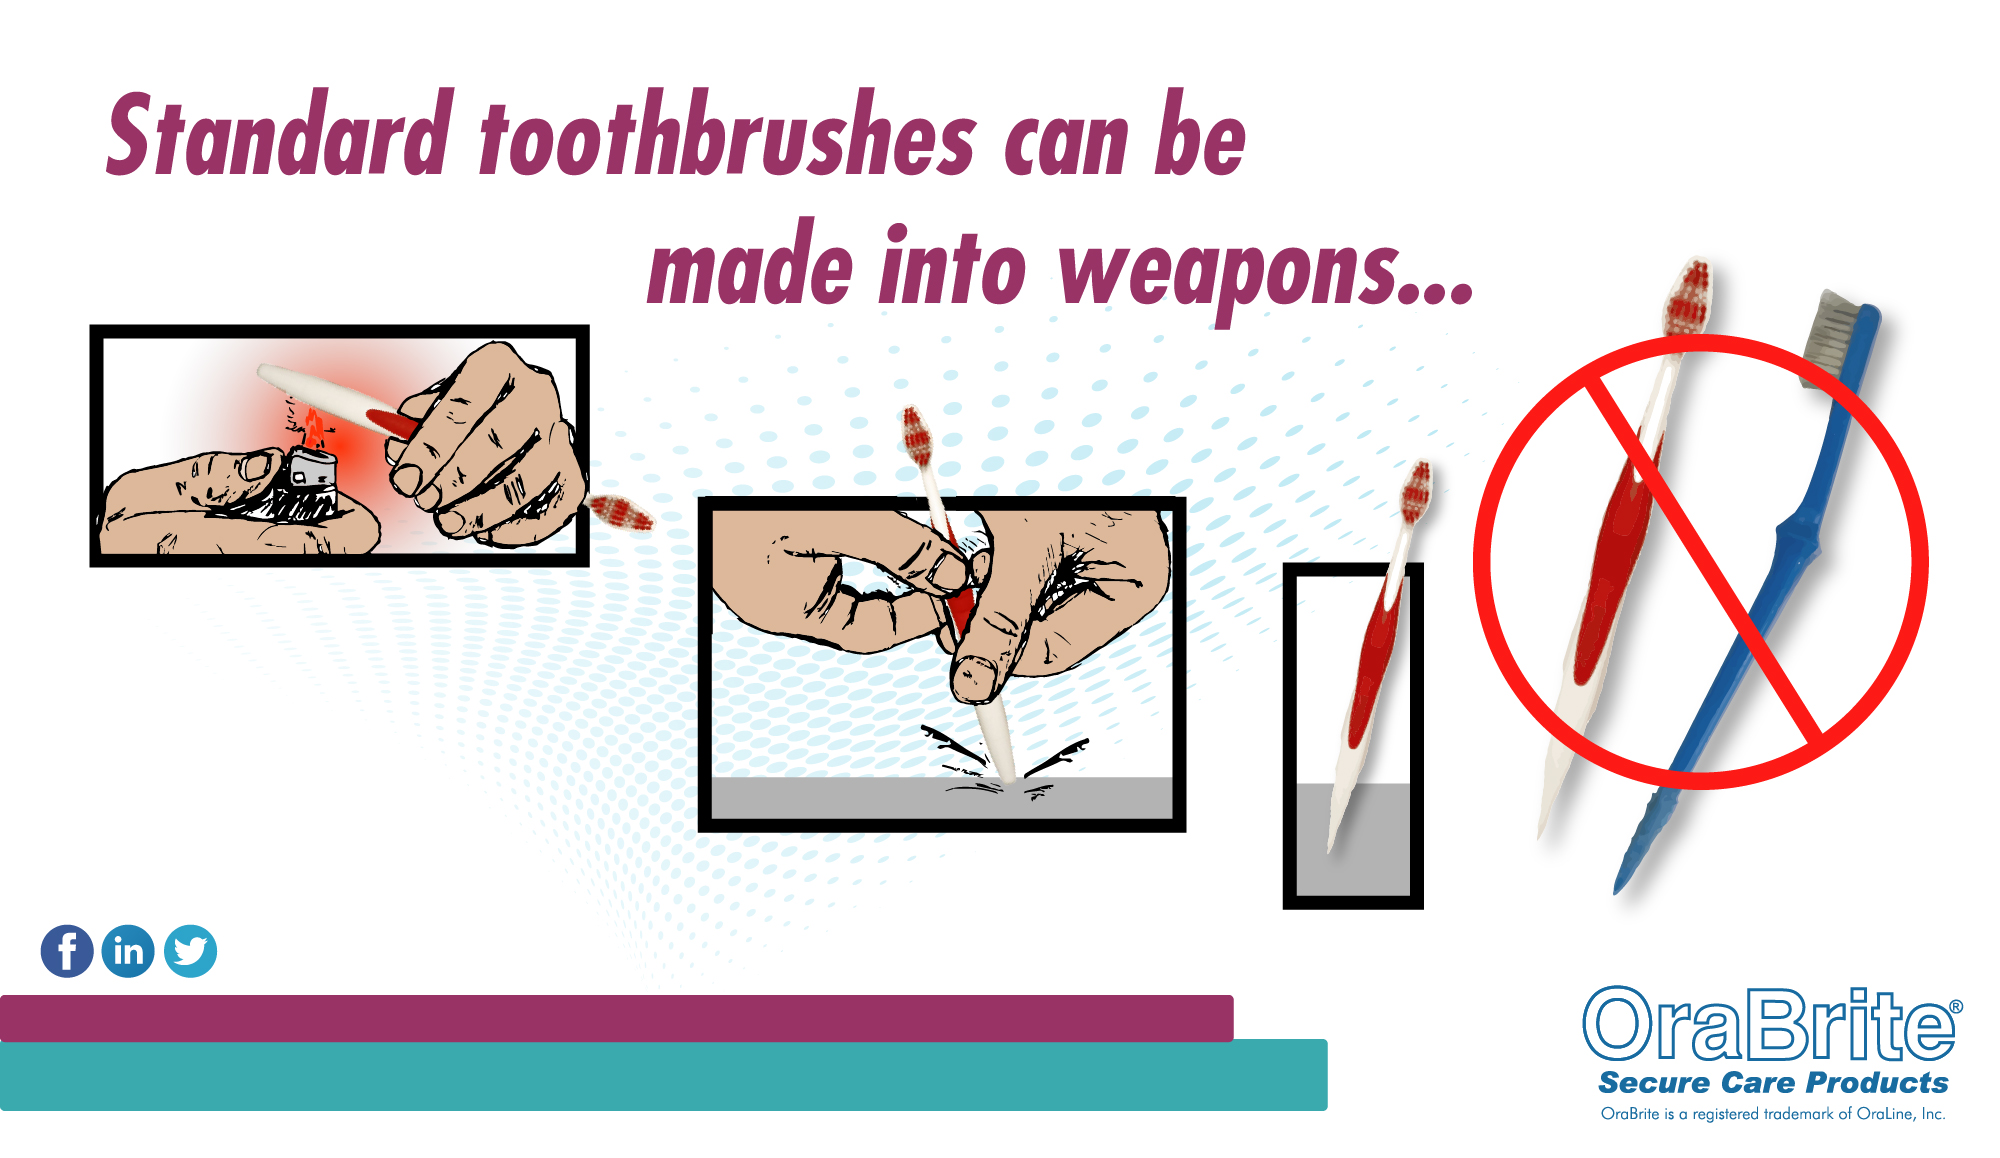 Standard toothbrushes can be made into weapons...